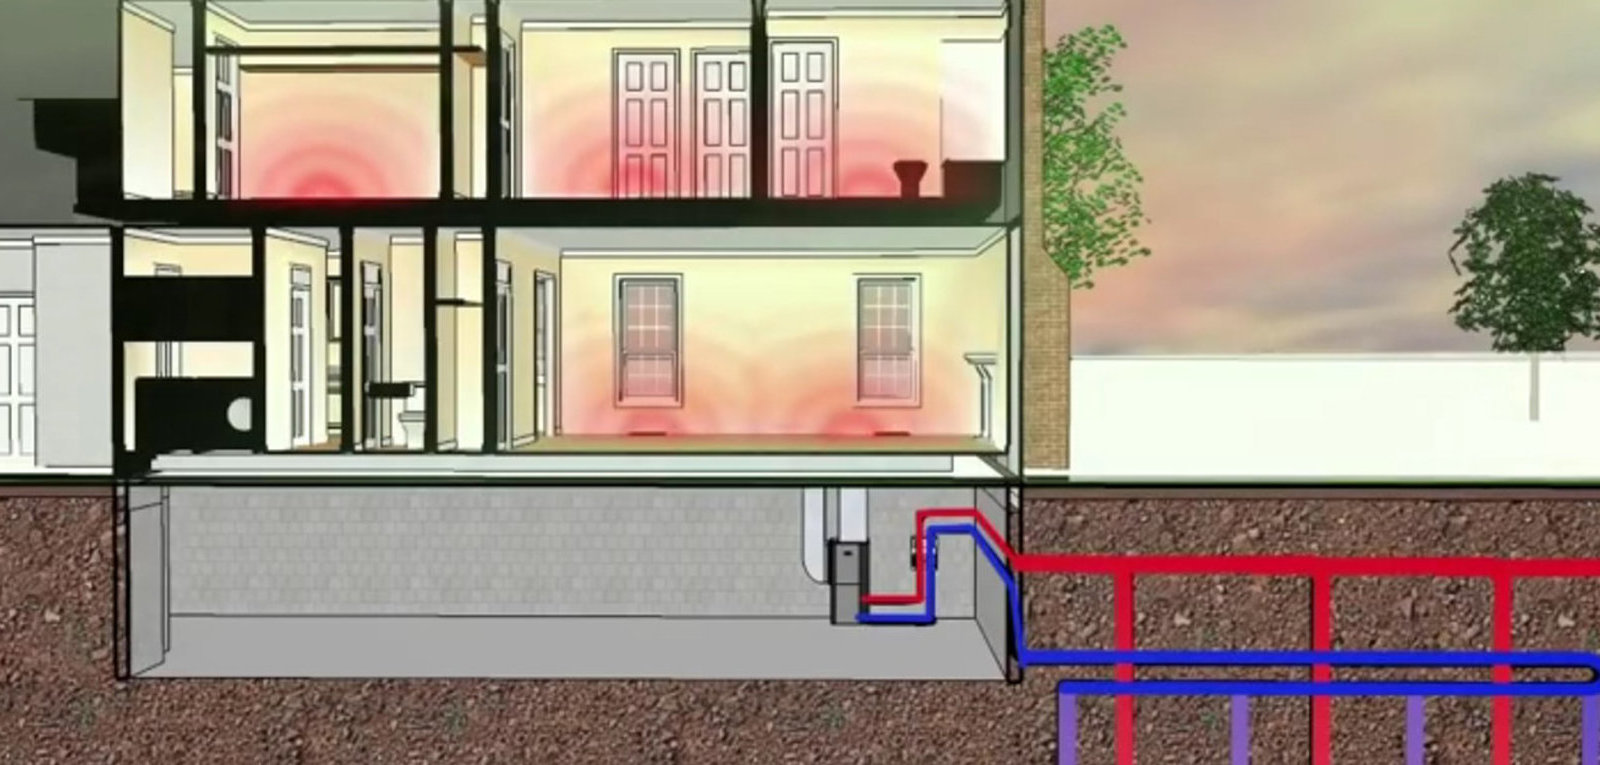 How Household Geothermal Energy Systems Work - Core77